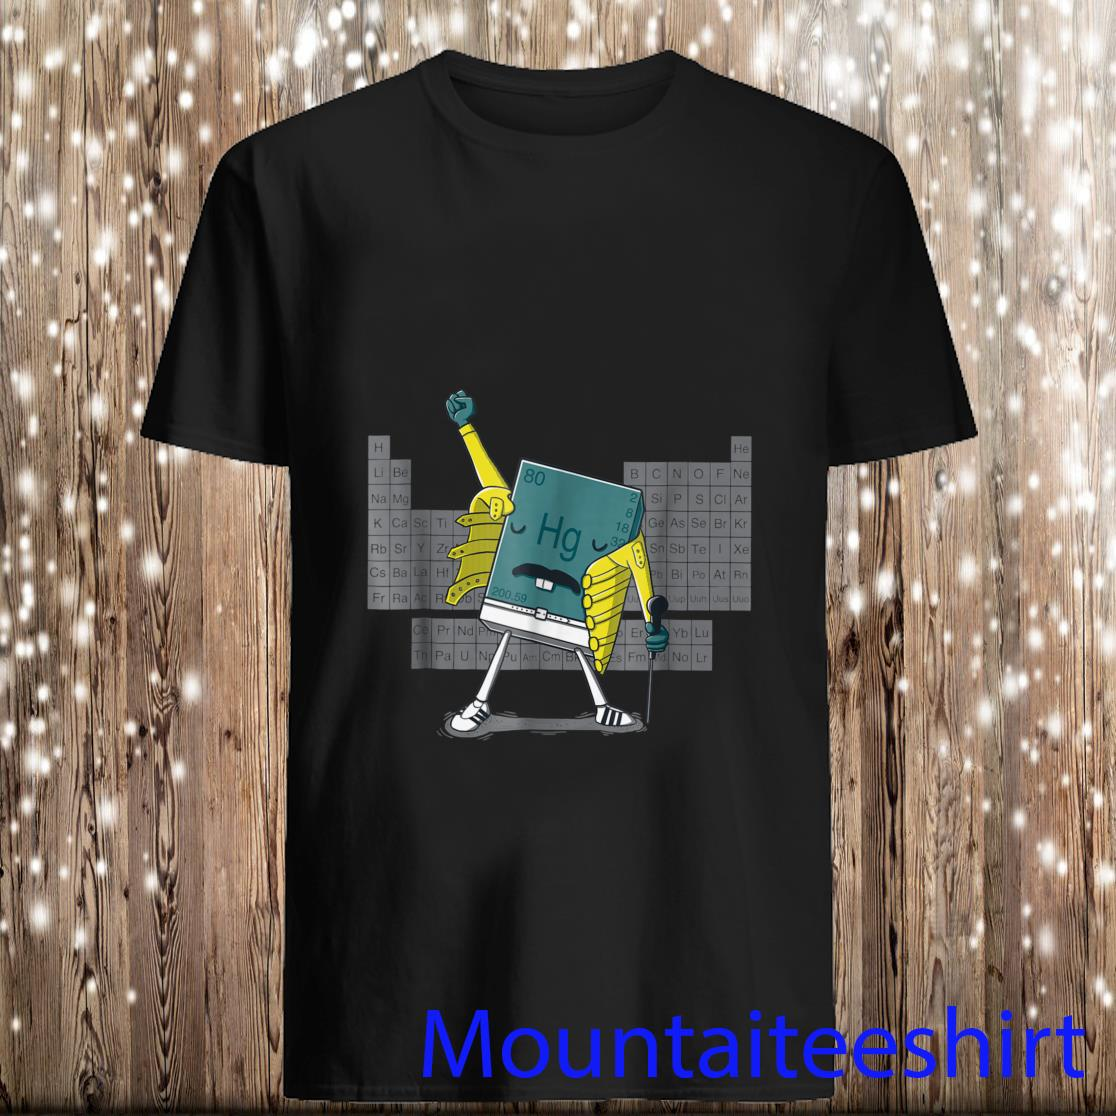 moutainteeshirt